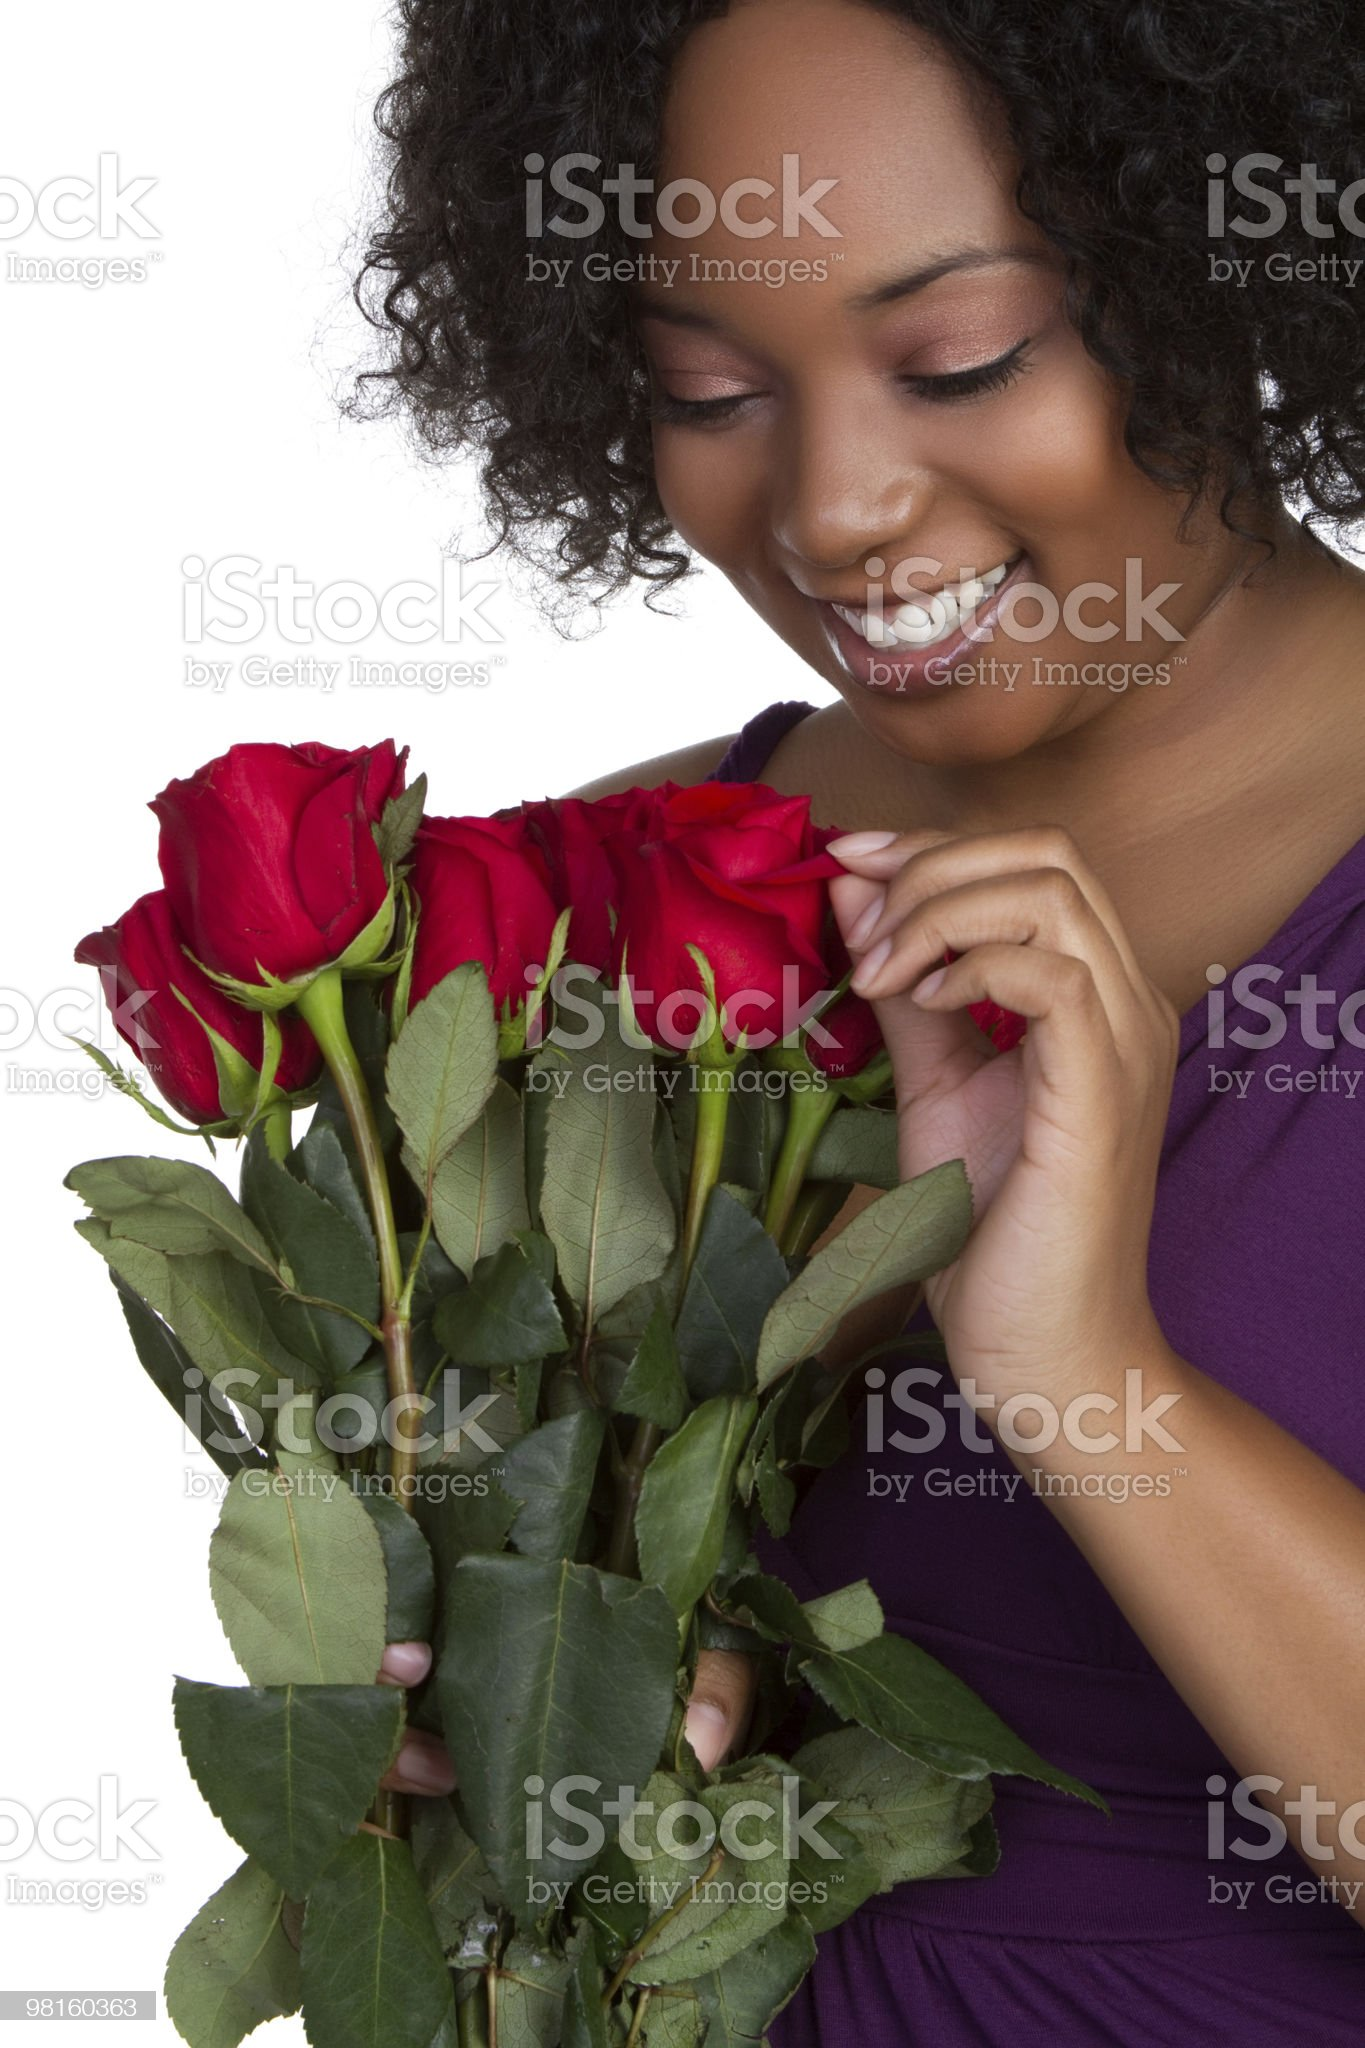 Roses Woman royalty-free stock photo